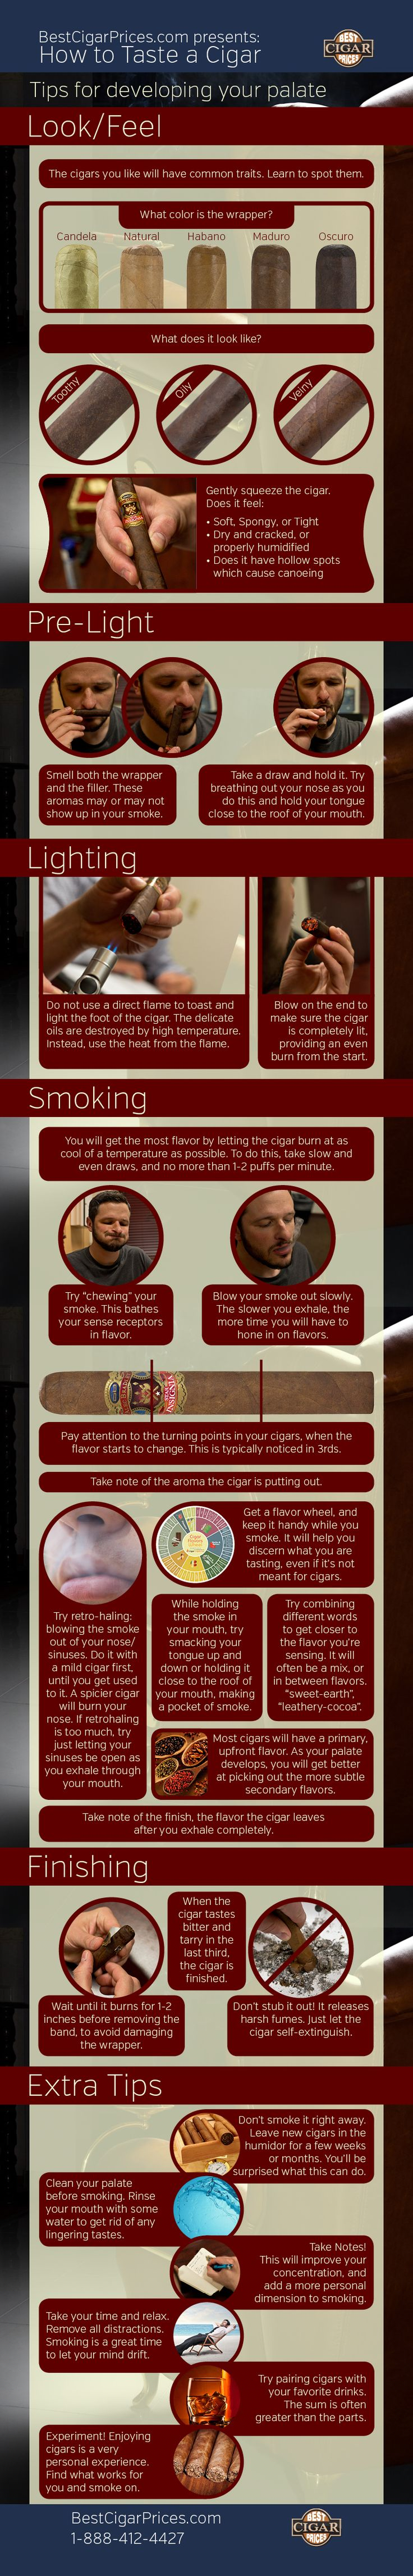 Great description on how to get the best out of your cigar and smoke it correctly.